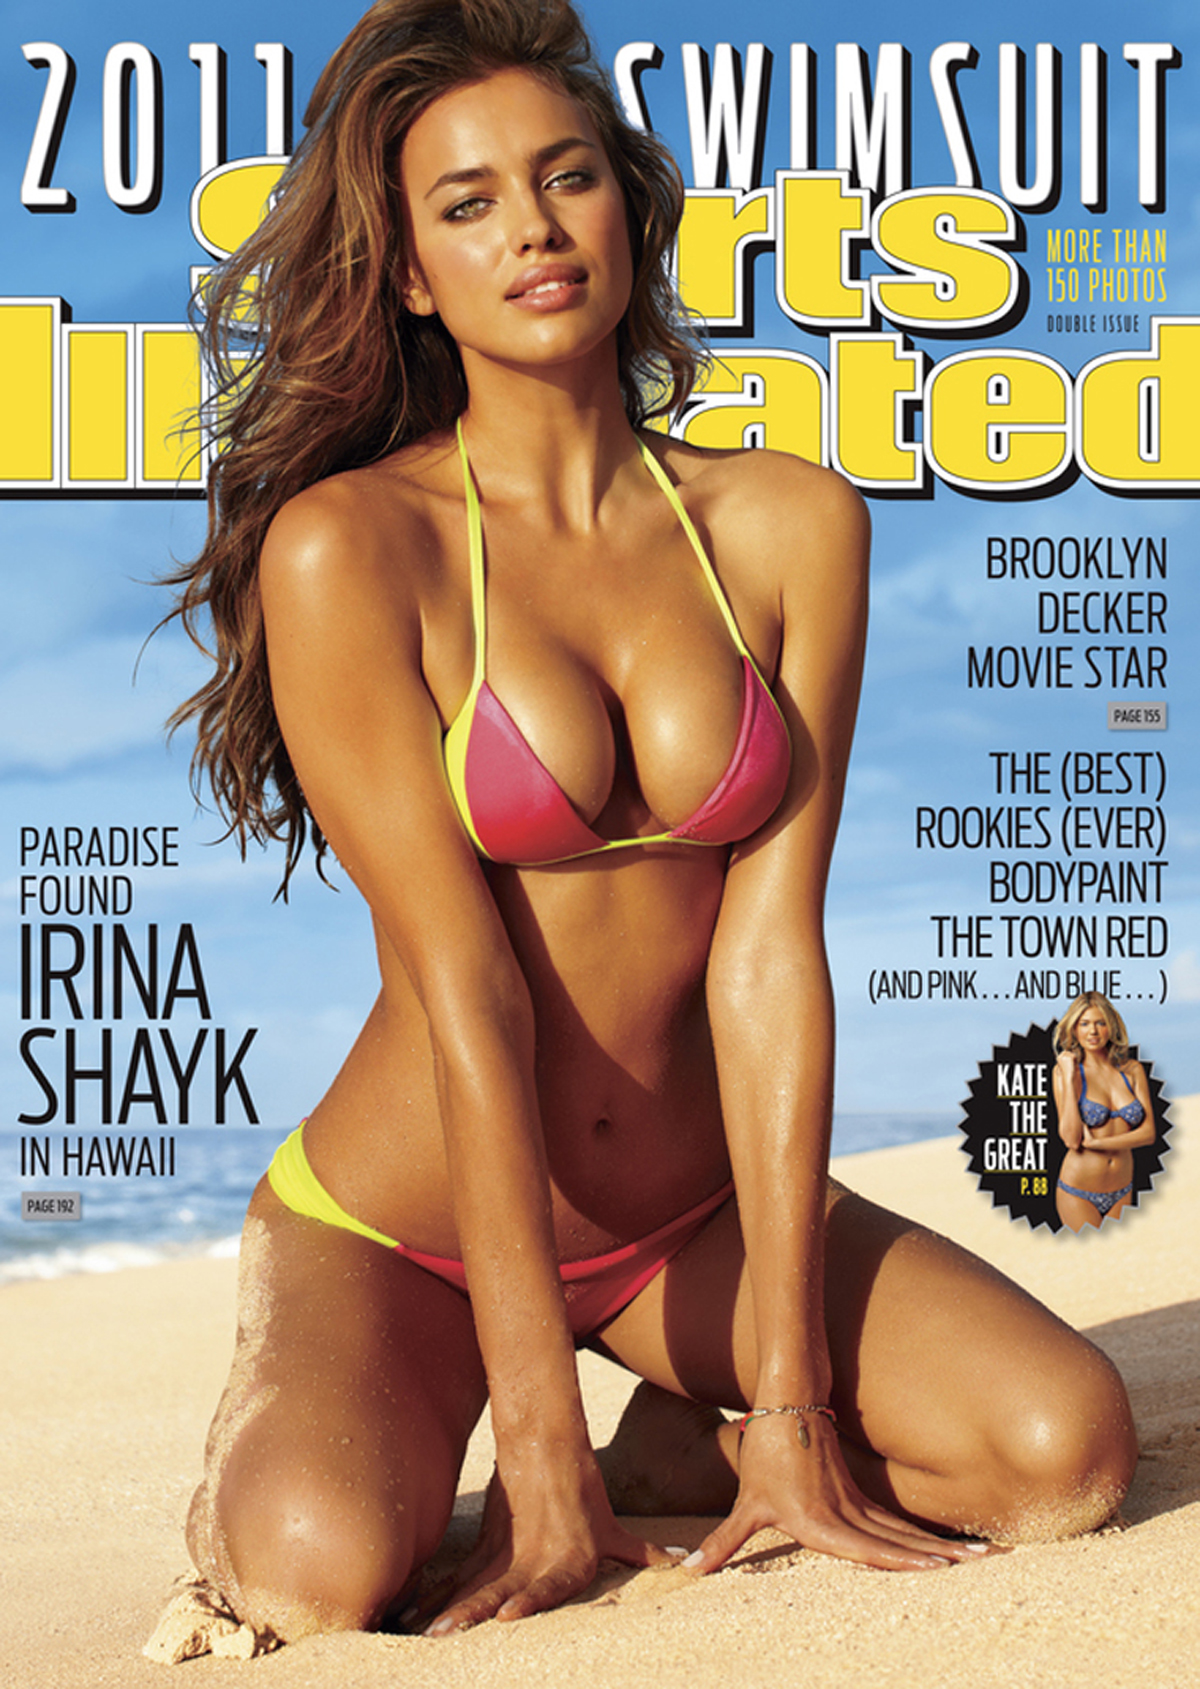 SI Swimsuit, Winter 2011